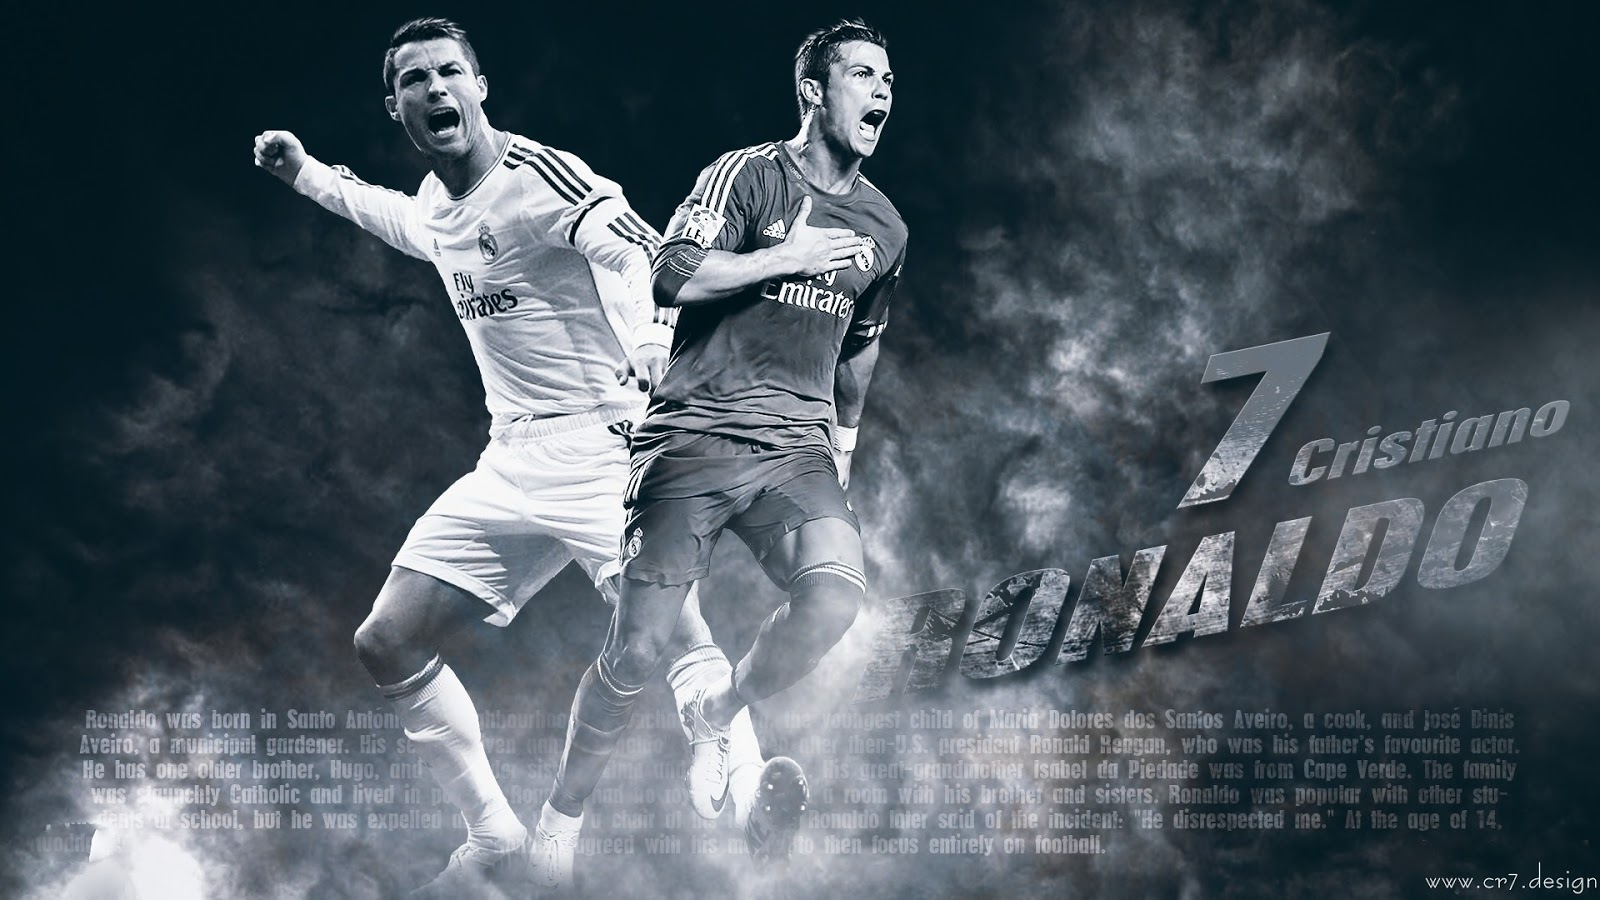 ciristiano-ronaldo-wallpaper-design-51